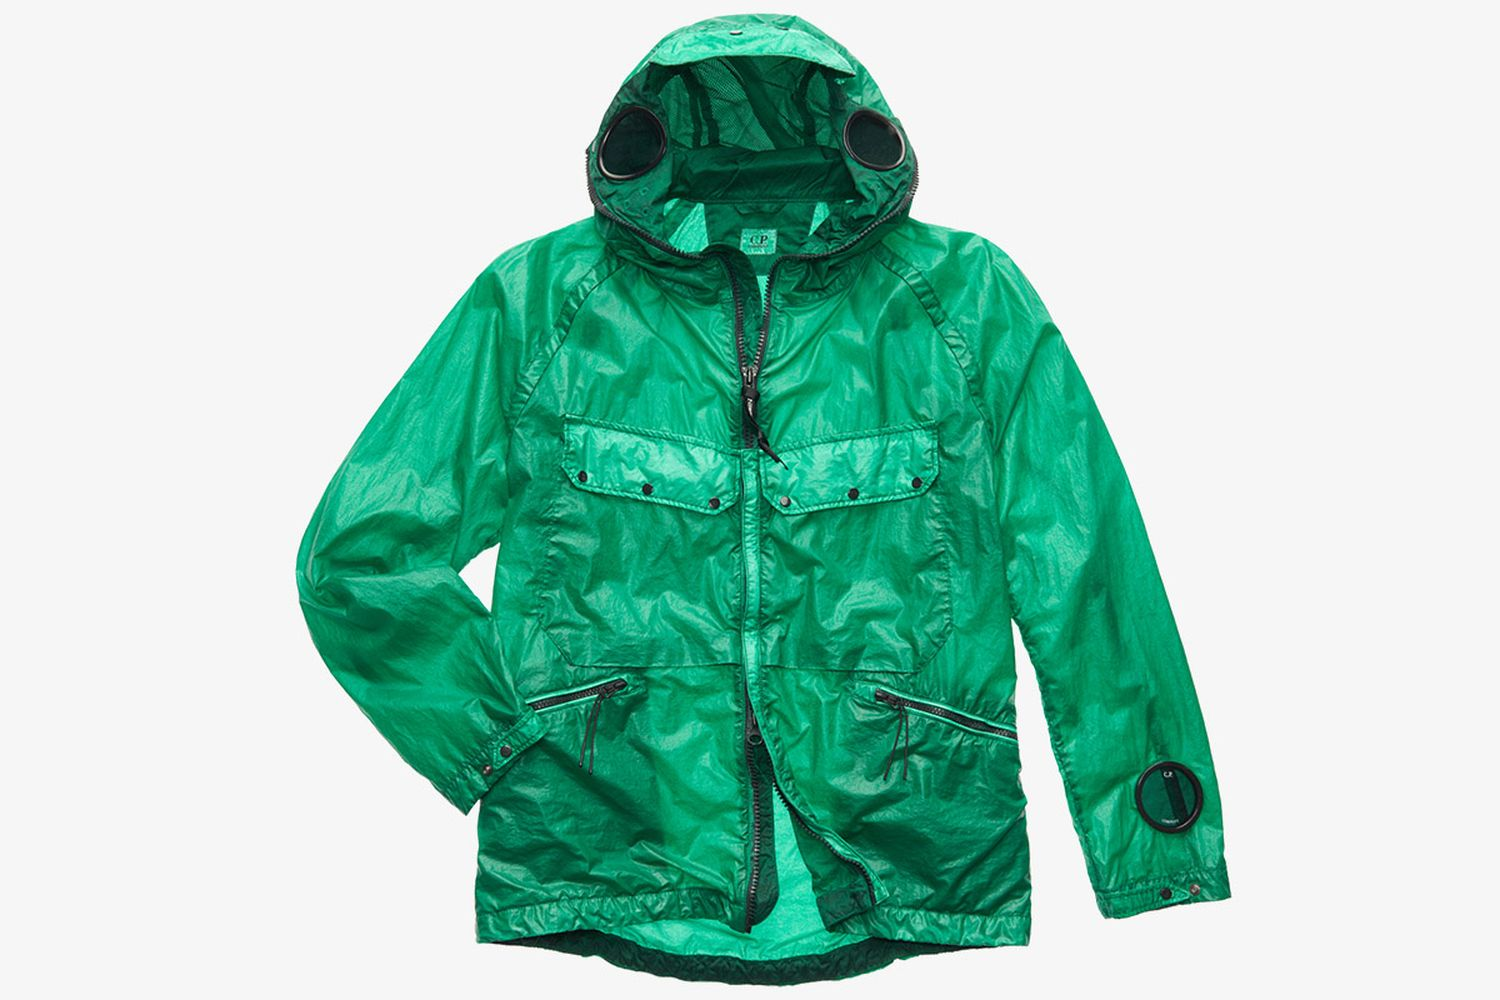 NyBer Special Dyed Goggle Jacket